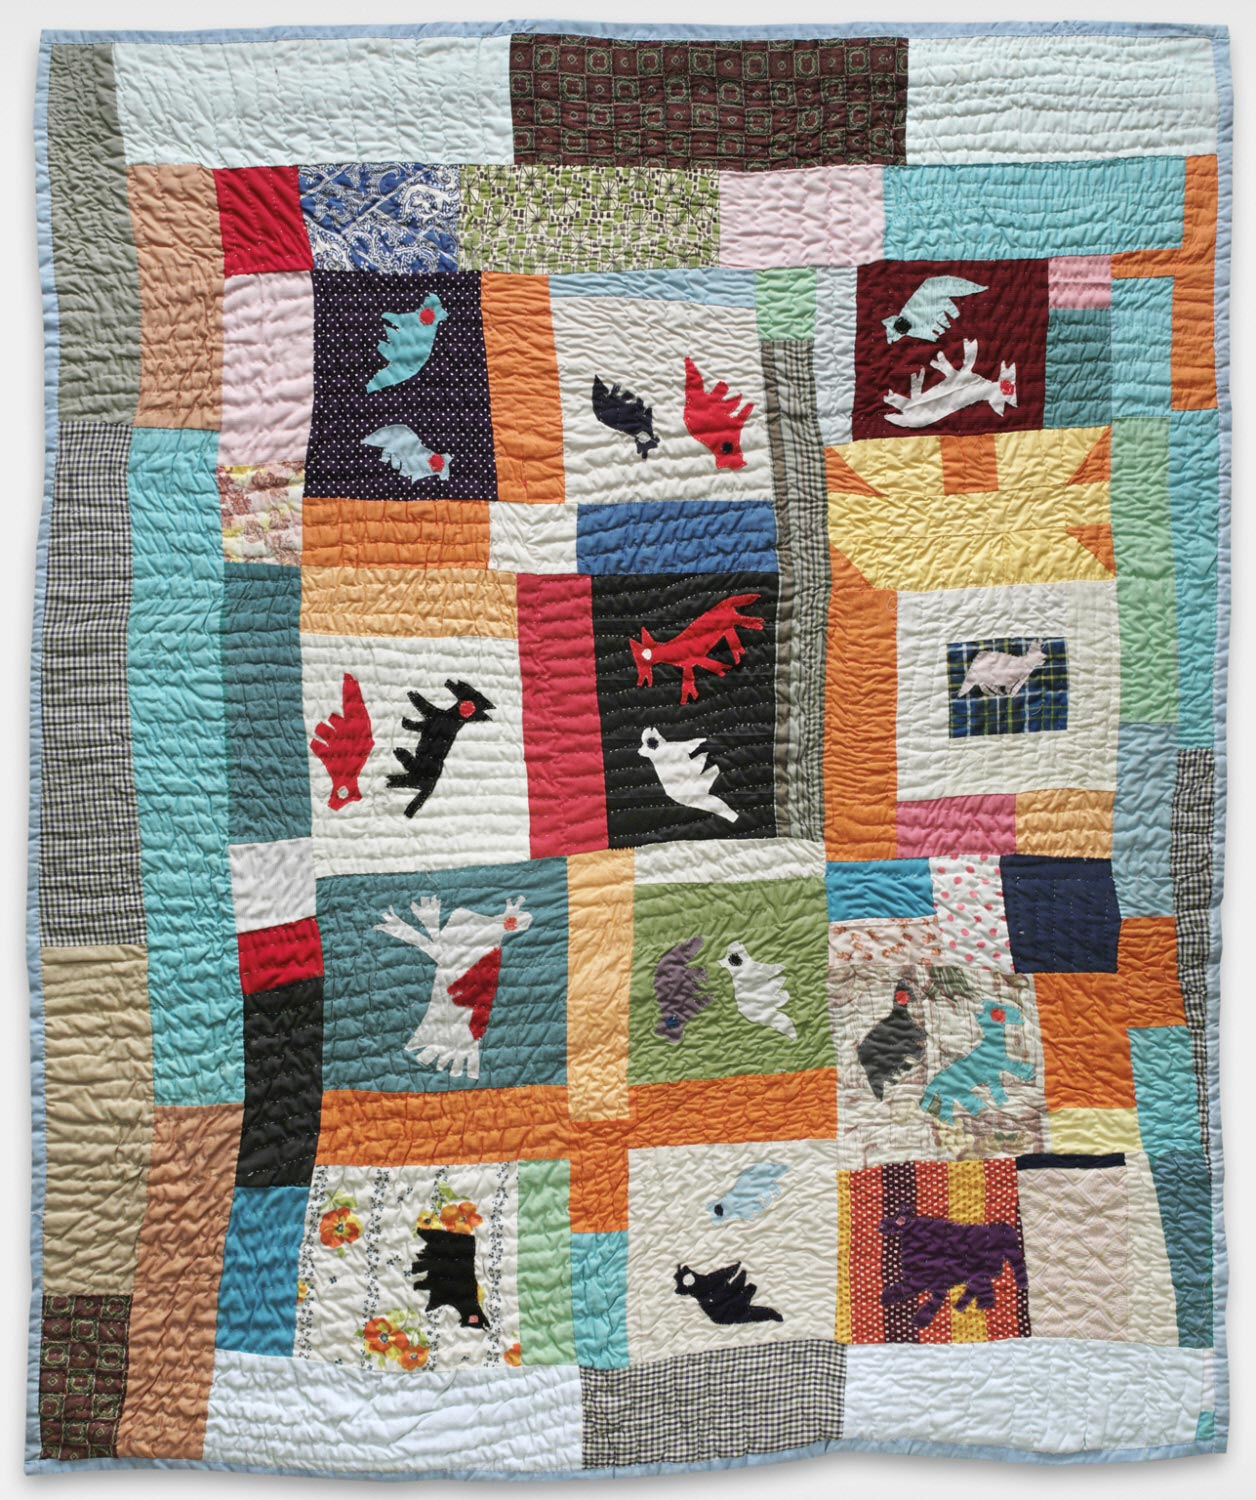 Image of a quilt, animal silhouettes and brightly colored blocks and rectangles.